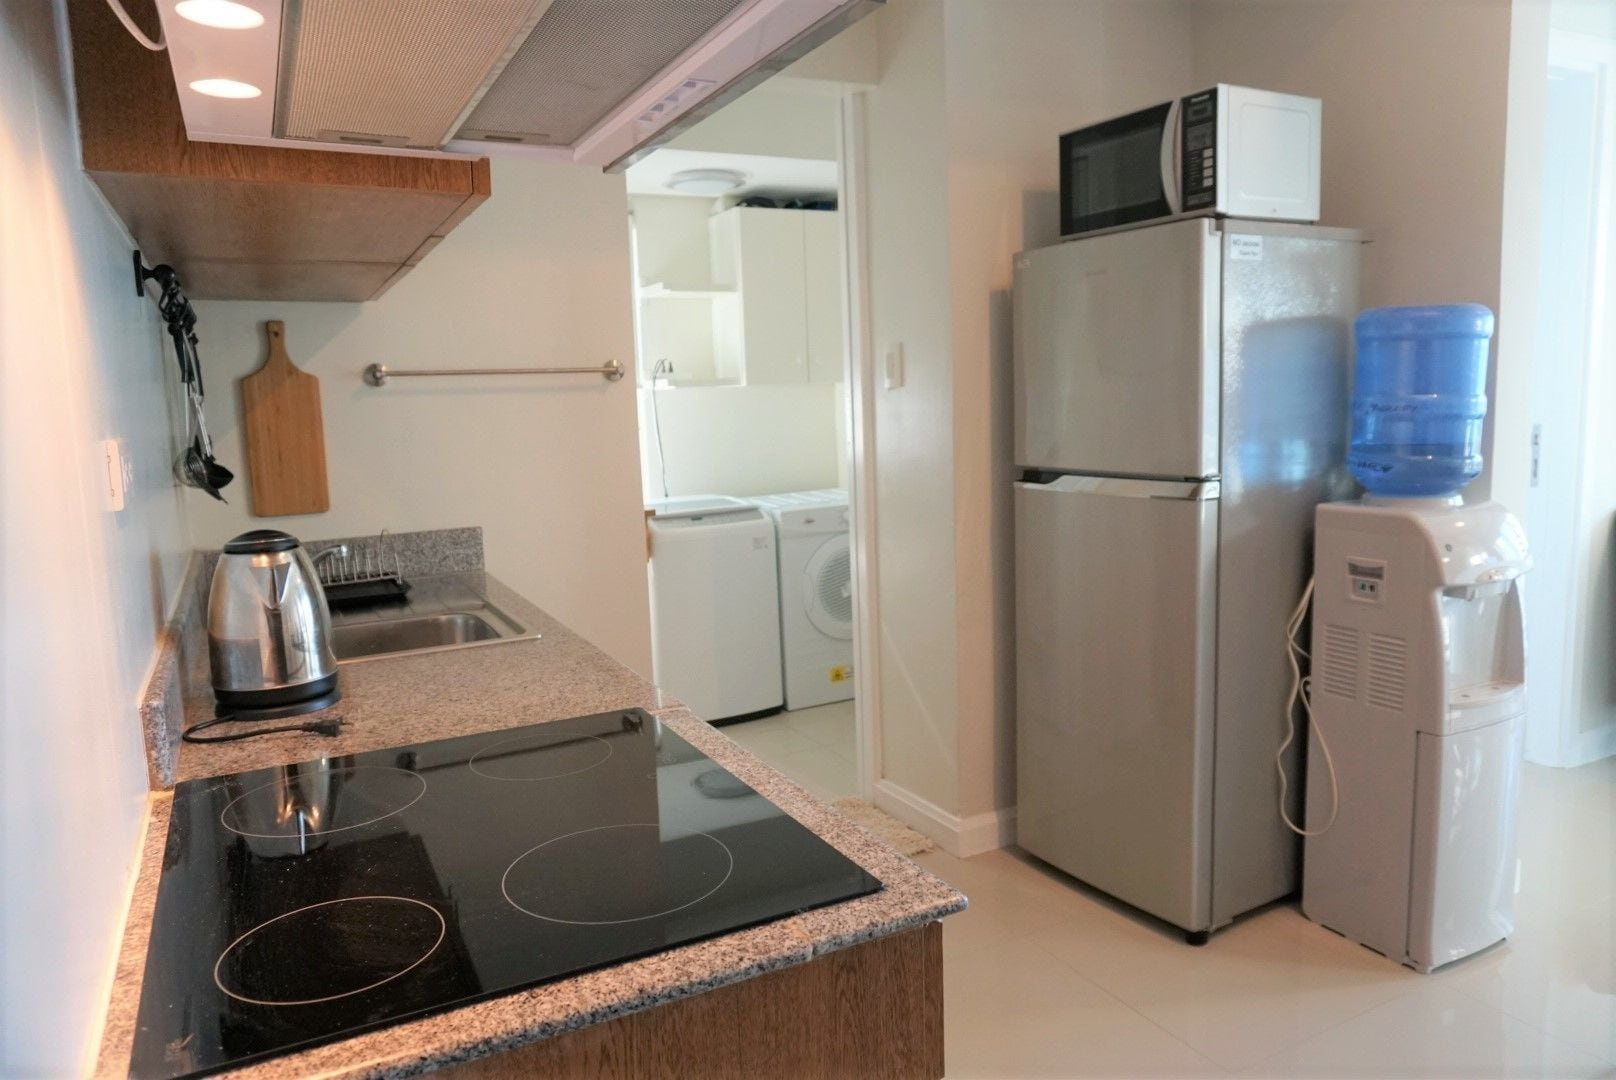 Mactan Seaside Apartments, Lapu-Lapu City